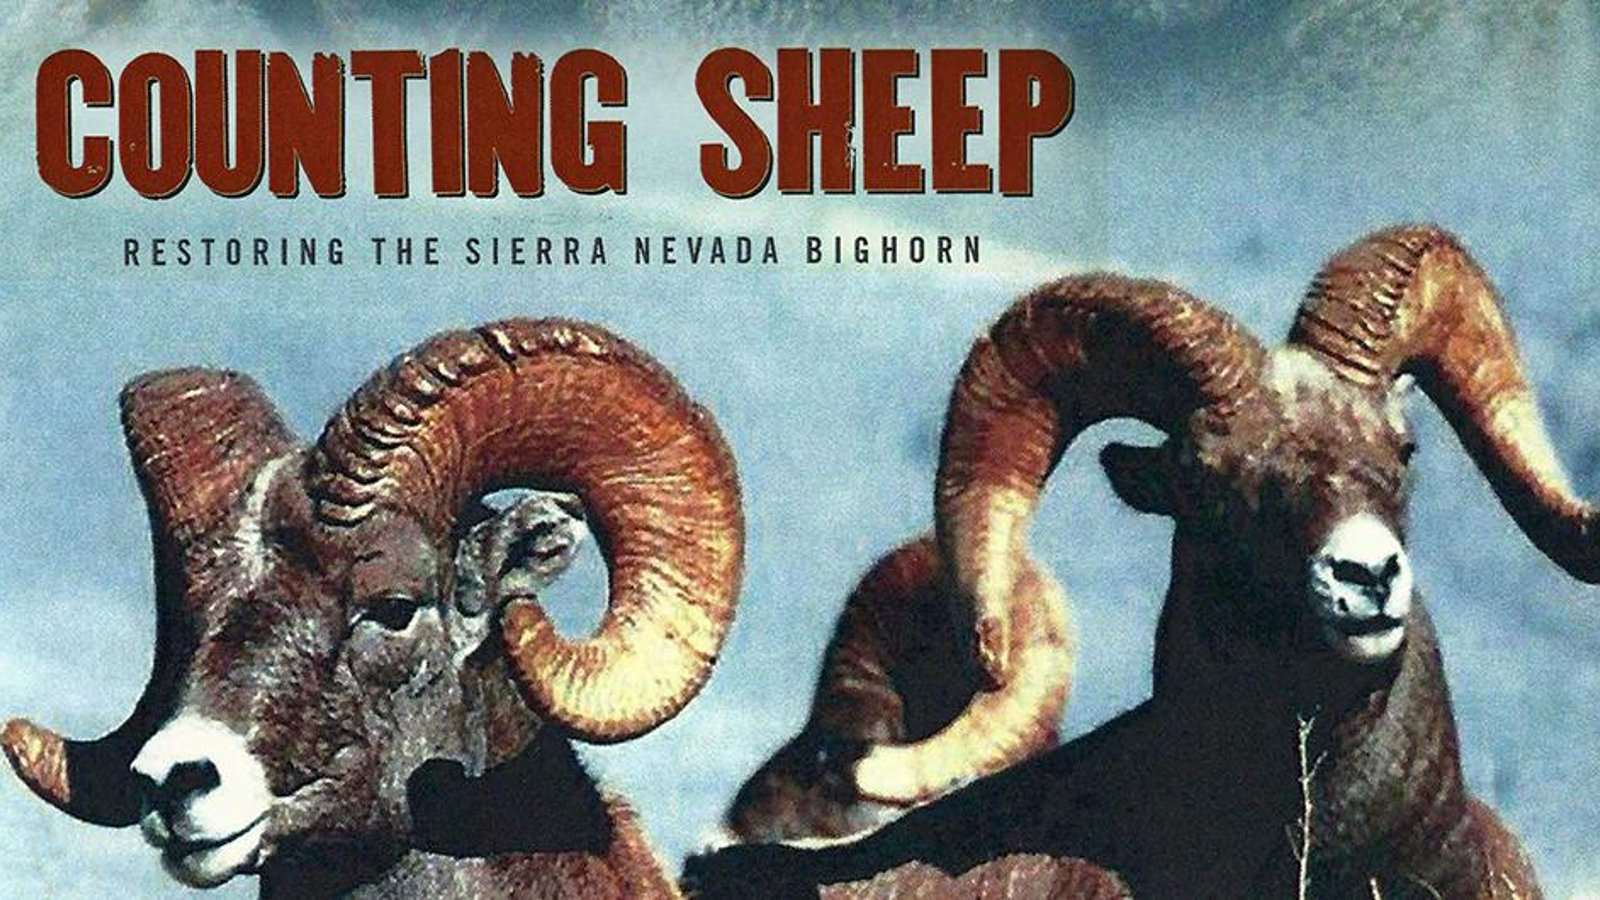 Counting Sheep - Restoring the Sierra Nevada Bighorn